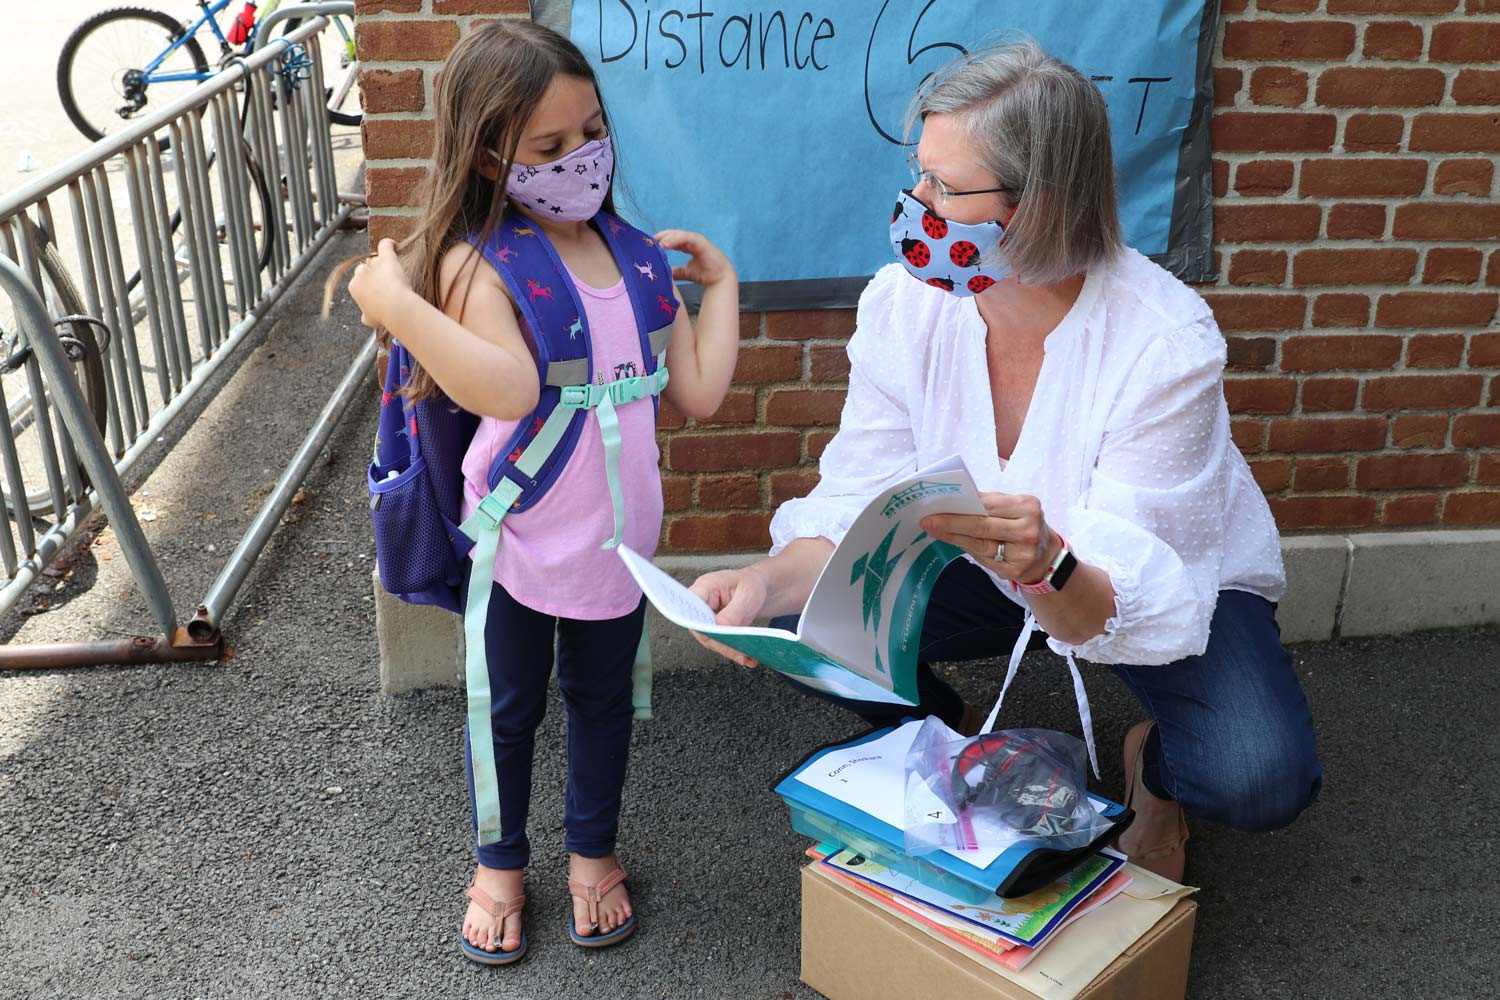 A crouching woman in a ladybug face mask talks with a young girl wearing a purple backpack and purple facemask about her school materials